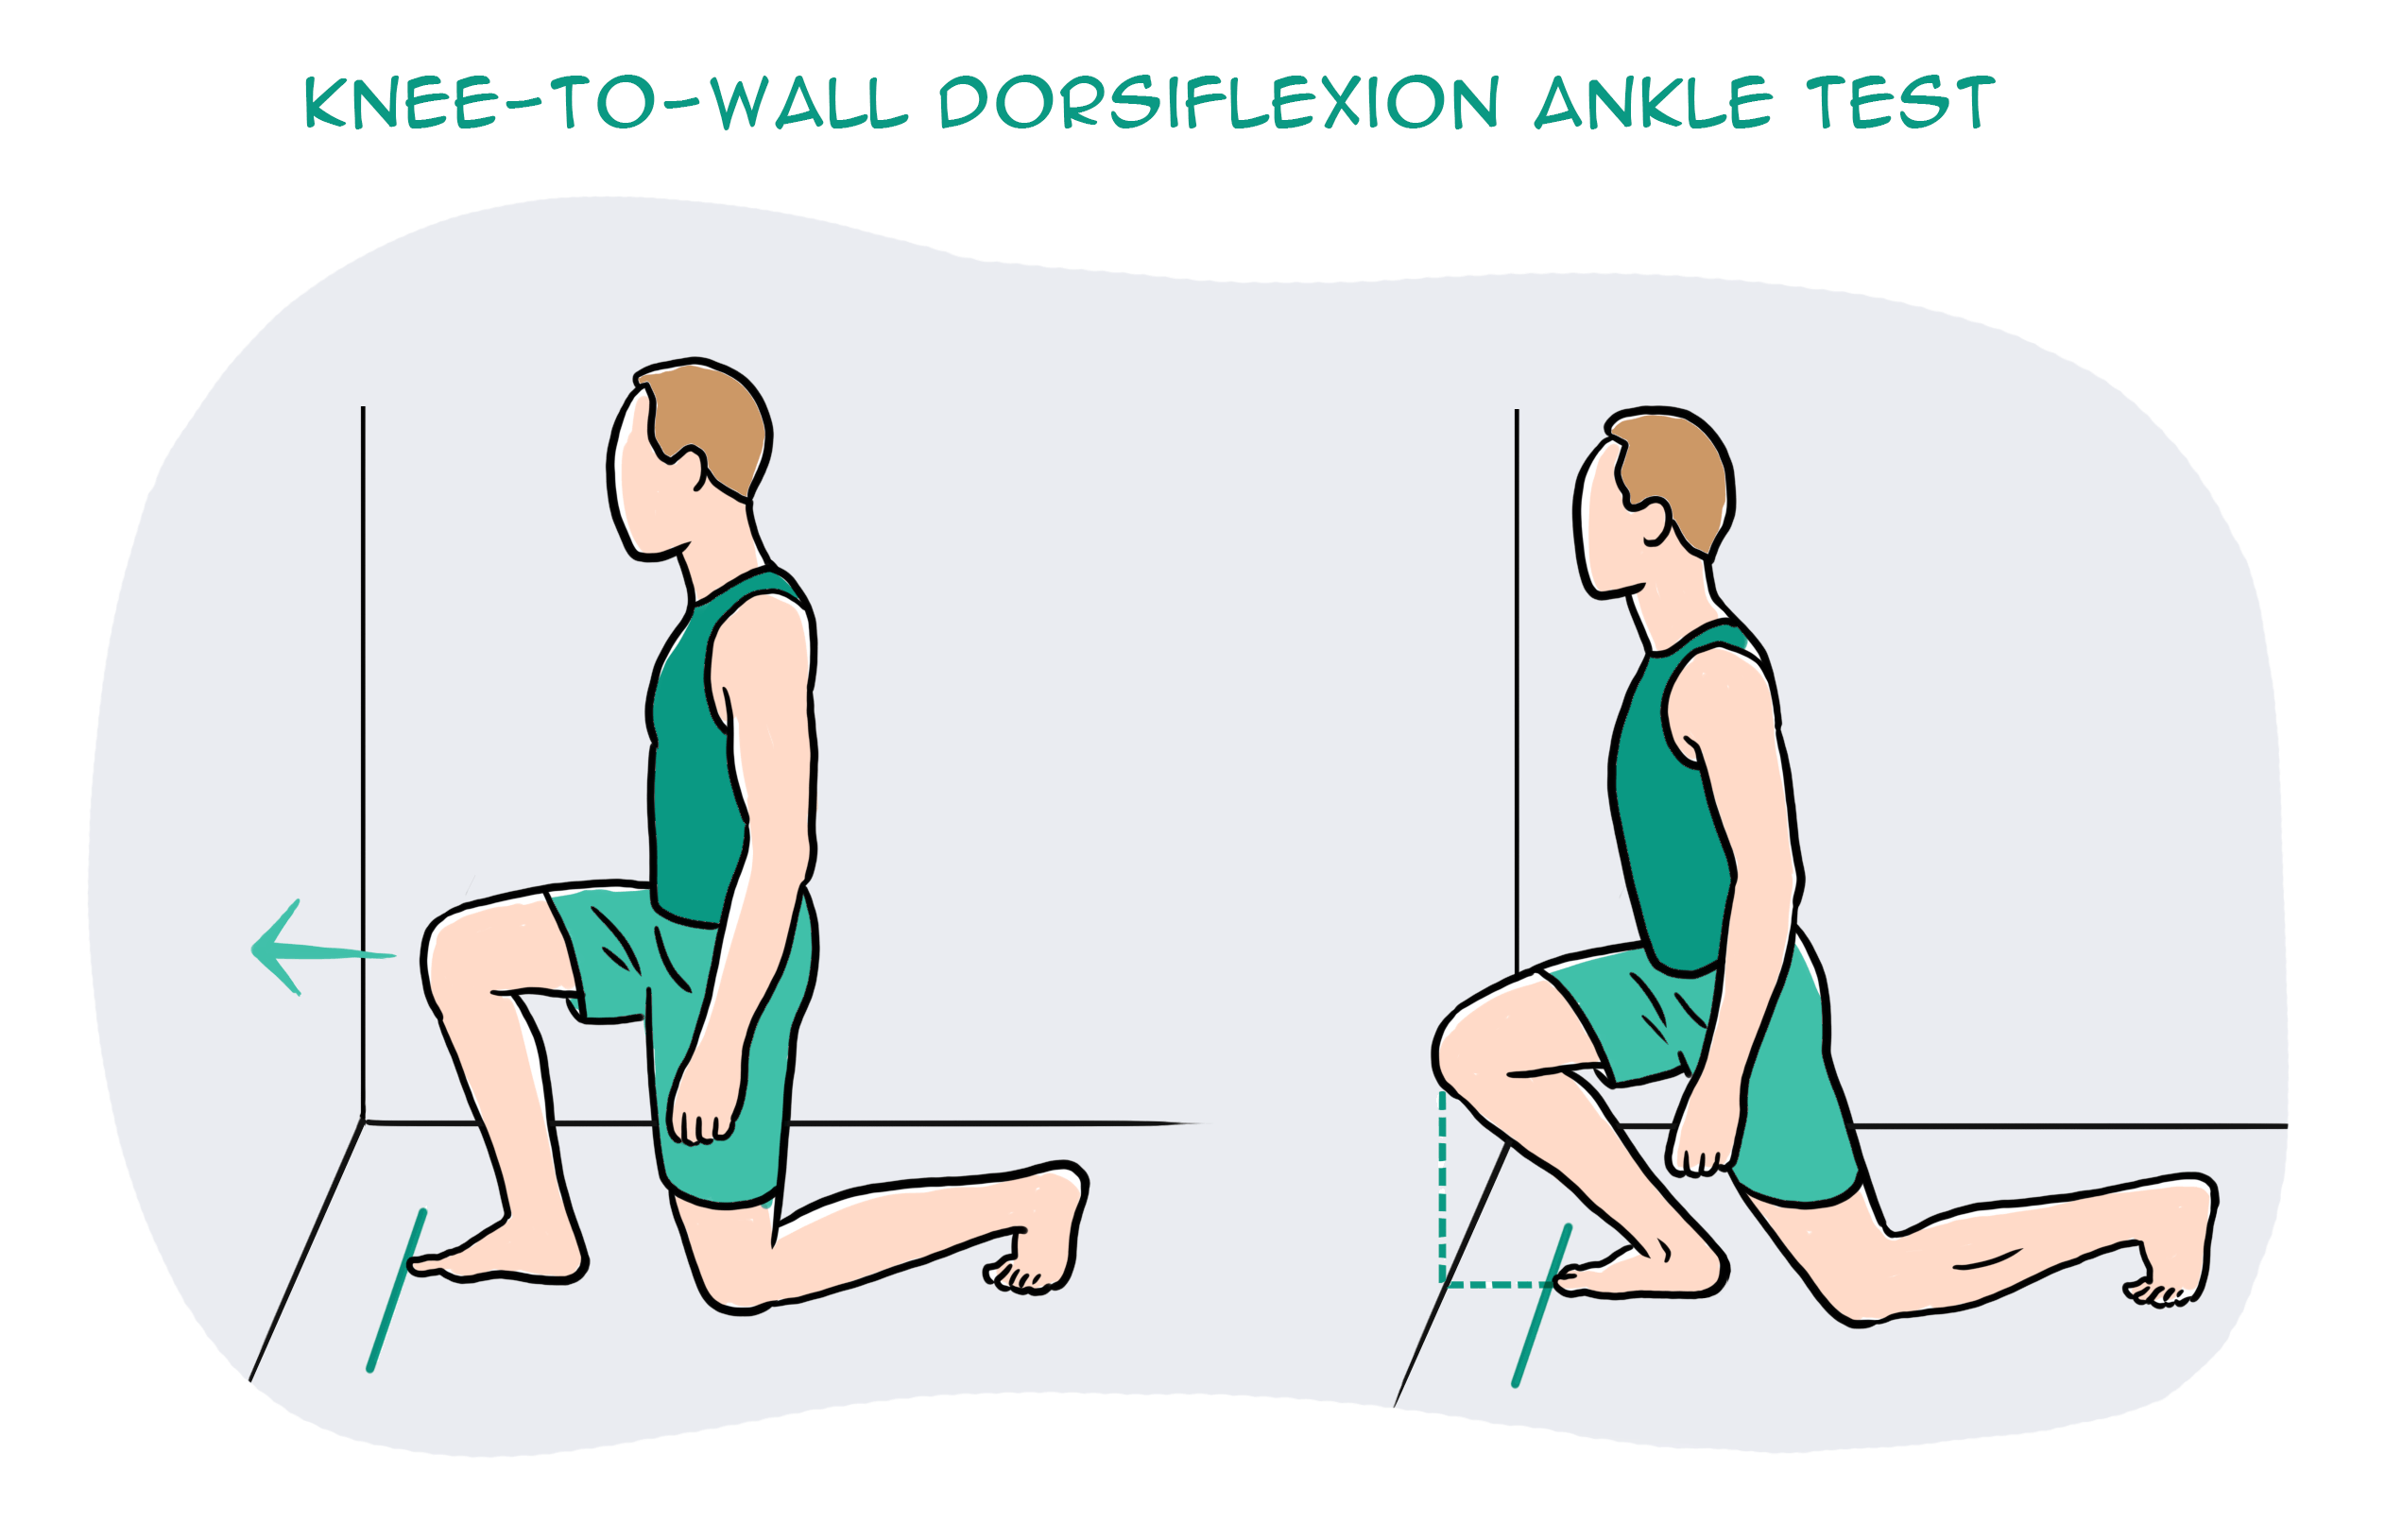 Dorsiflexion Ankle Test And Ankle Mobility Exercises 13